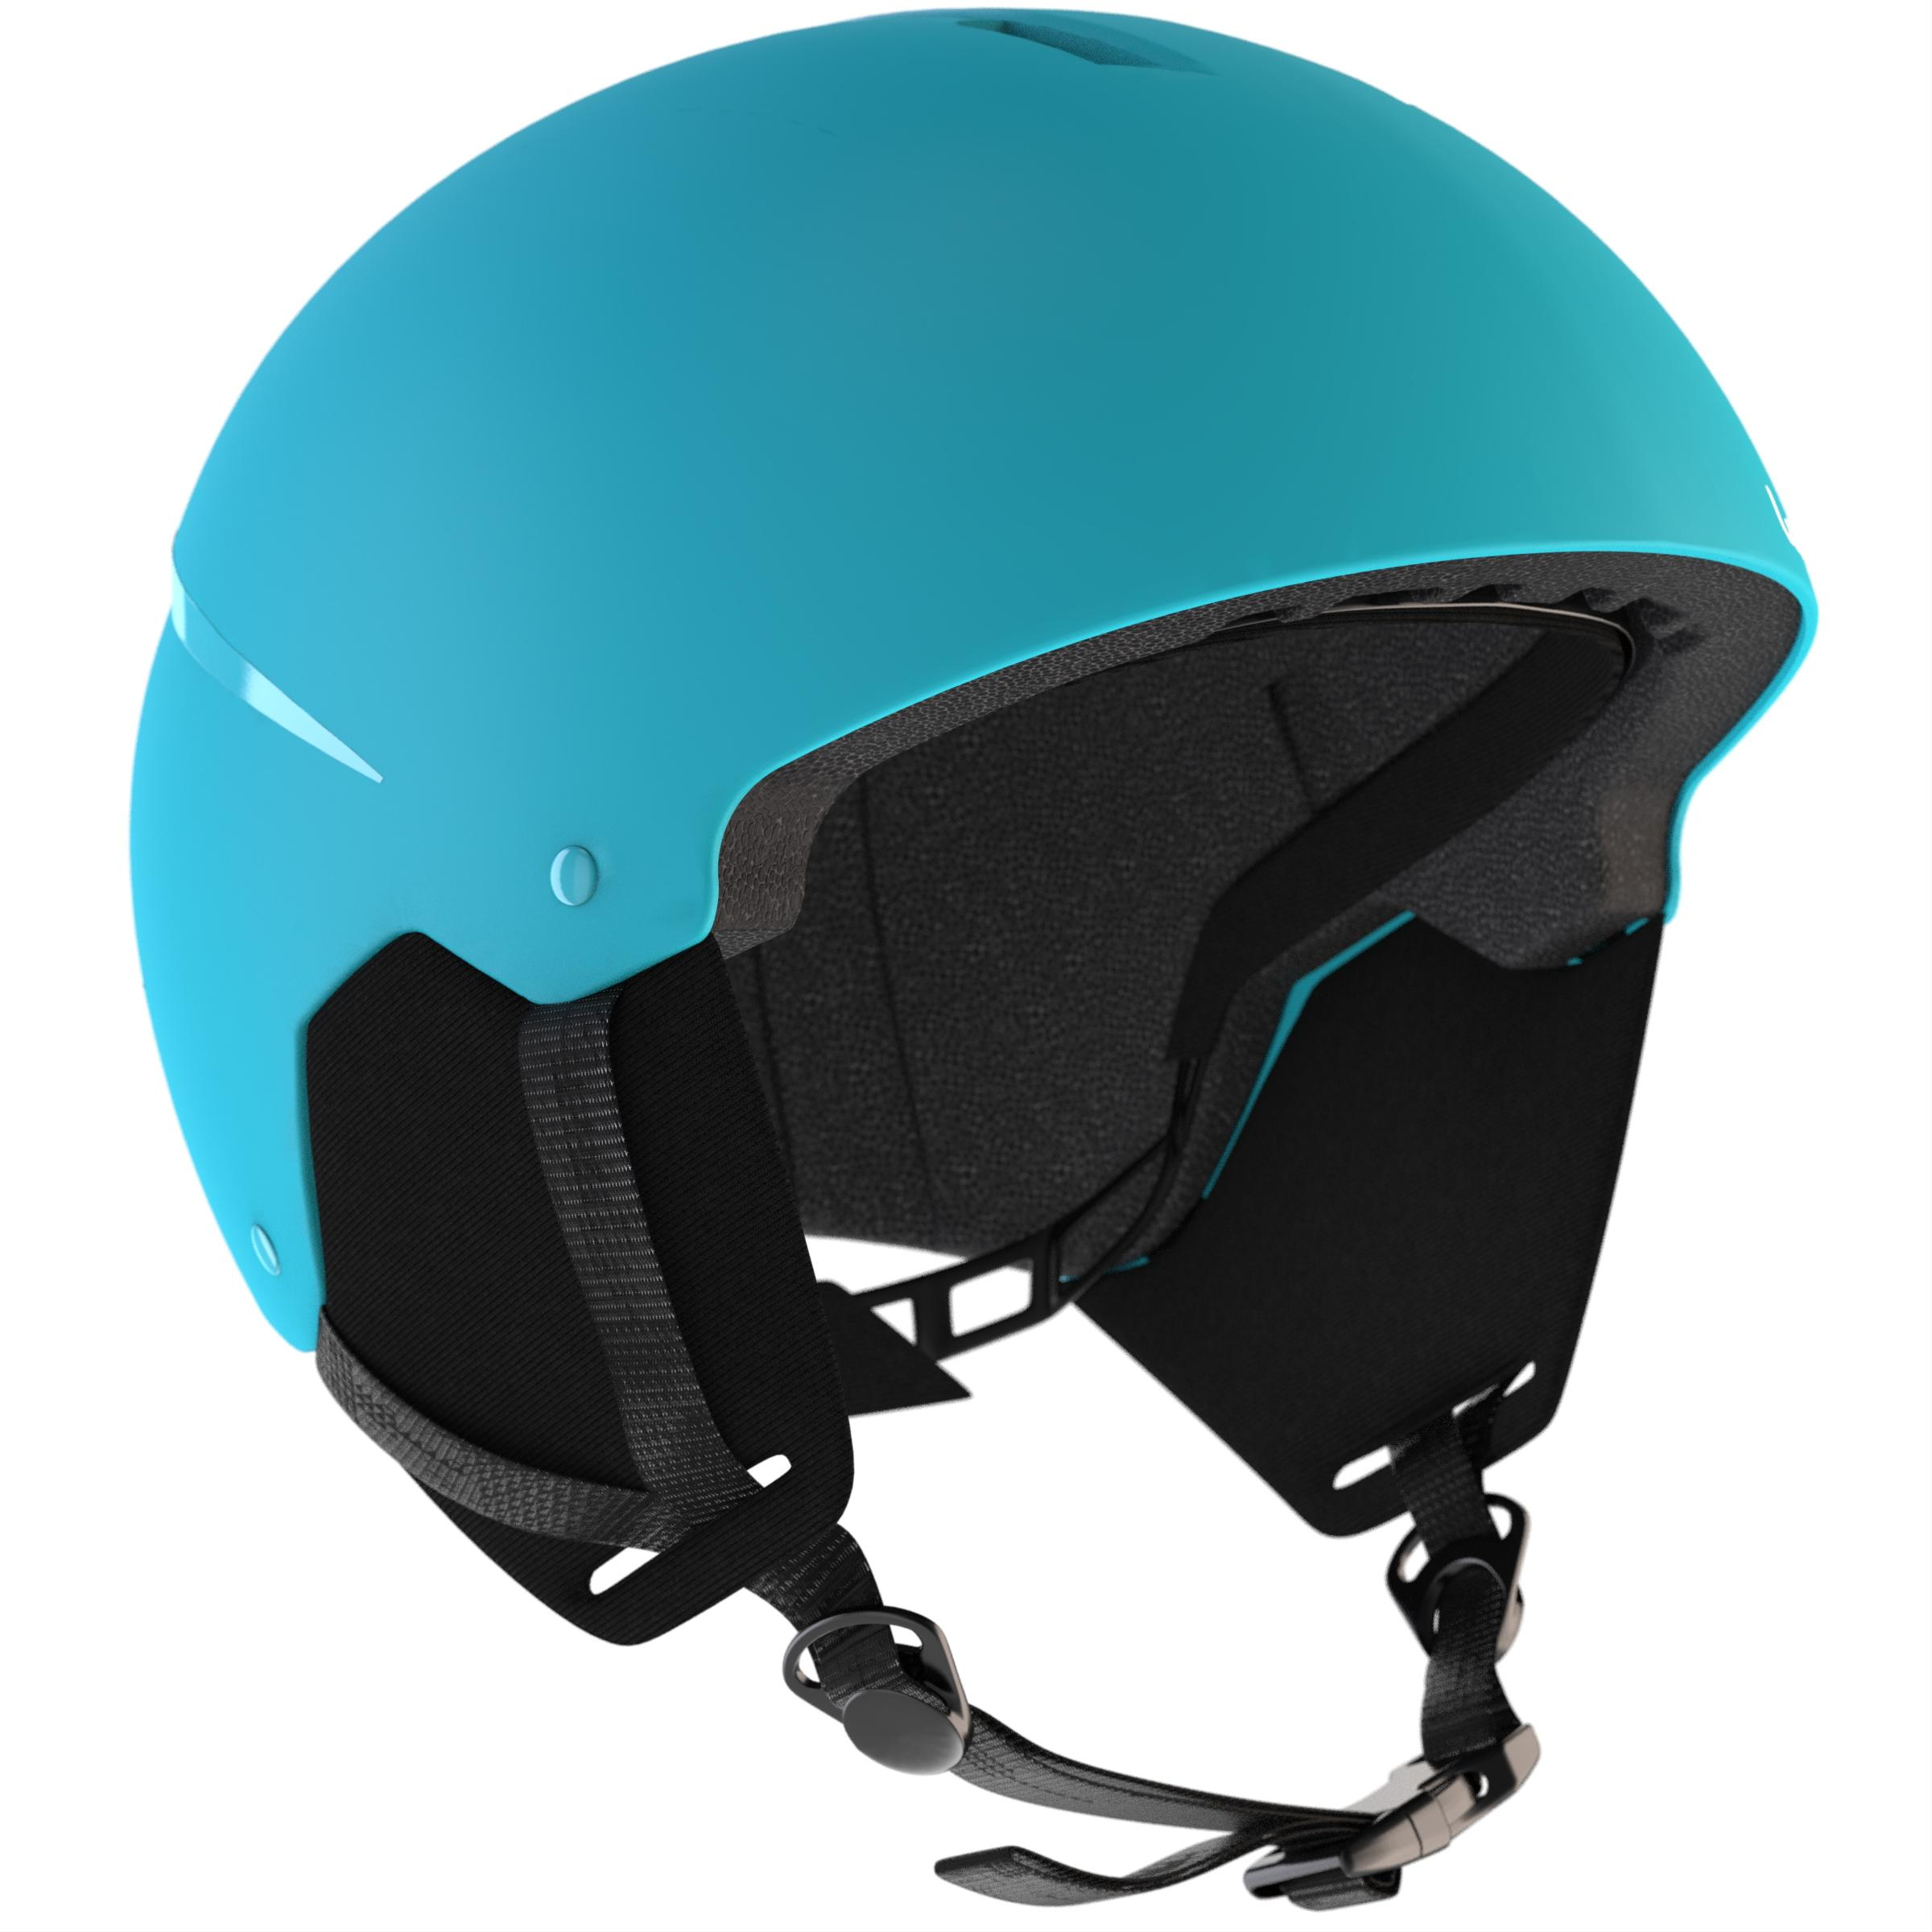 CHILD'S SNOWBOARD & SKI HELMET H 100, BLUE